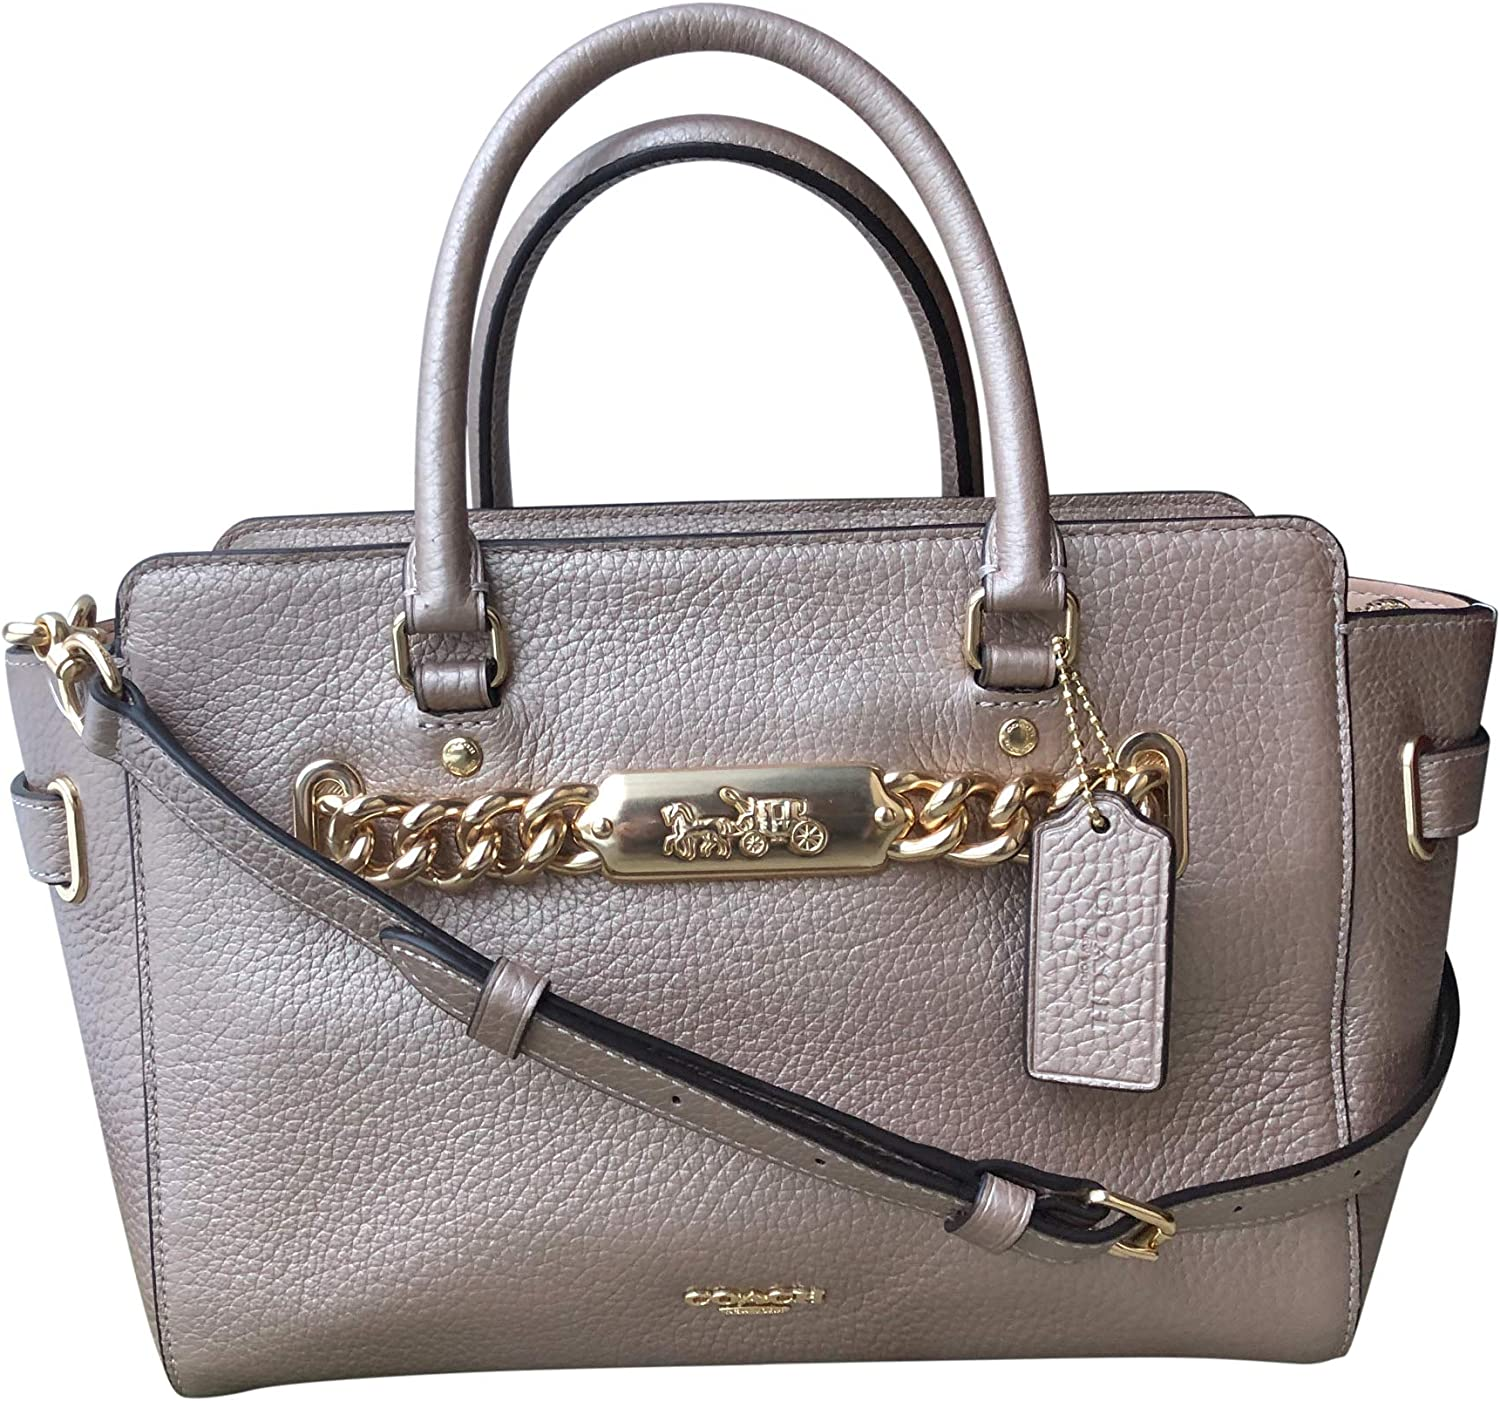 COACH CARRYALL 25 CROSSBODY...